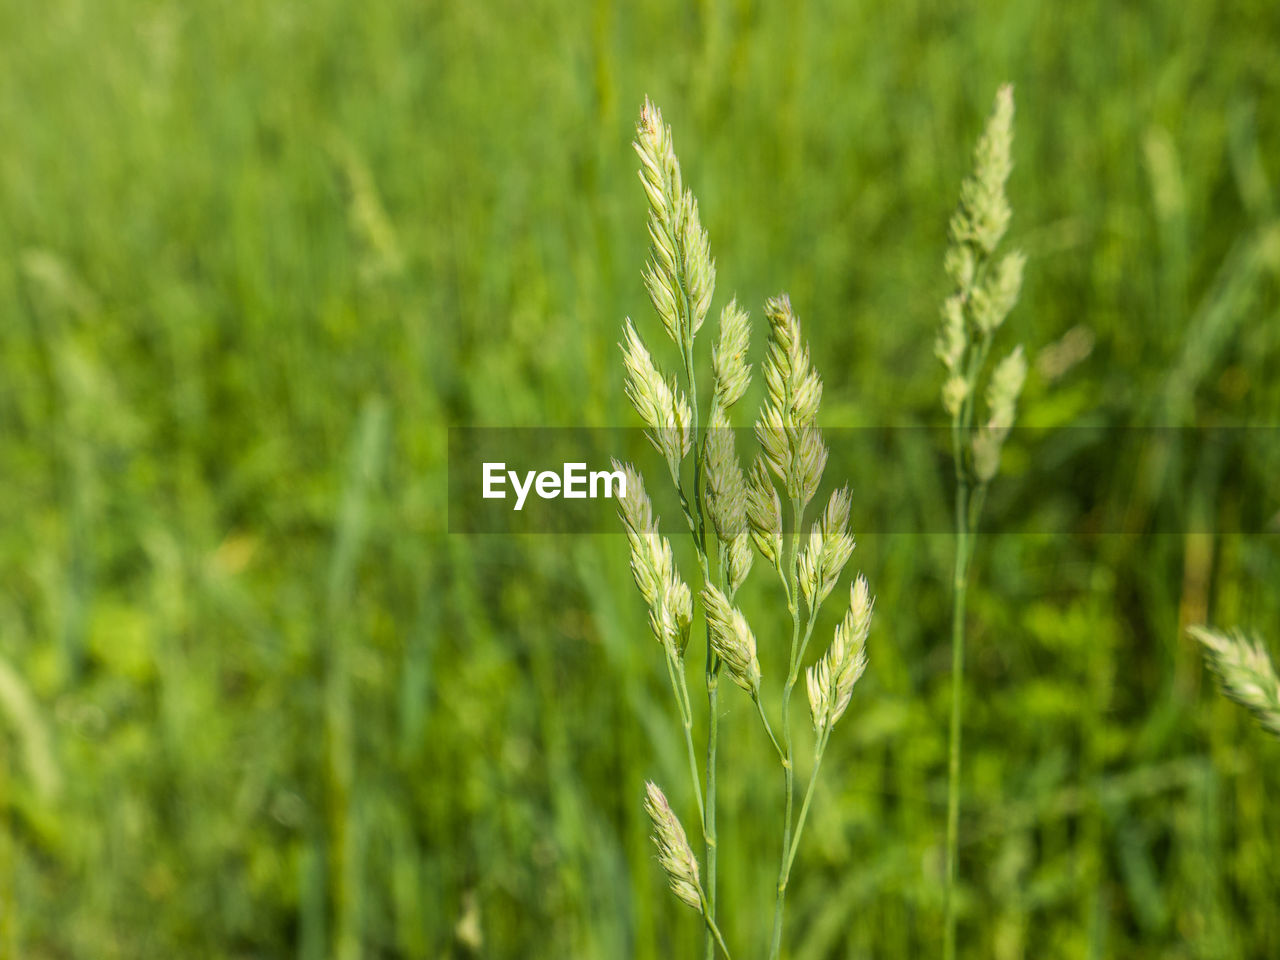 plant, growth, green color, nature, close-up, agriculture, beauty in nature, no people, cereal plant, day, field, crop, land, focus on foreground, farm, landscape, rural scene, outdoors, tranquility, wheat, stalk, plantation